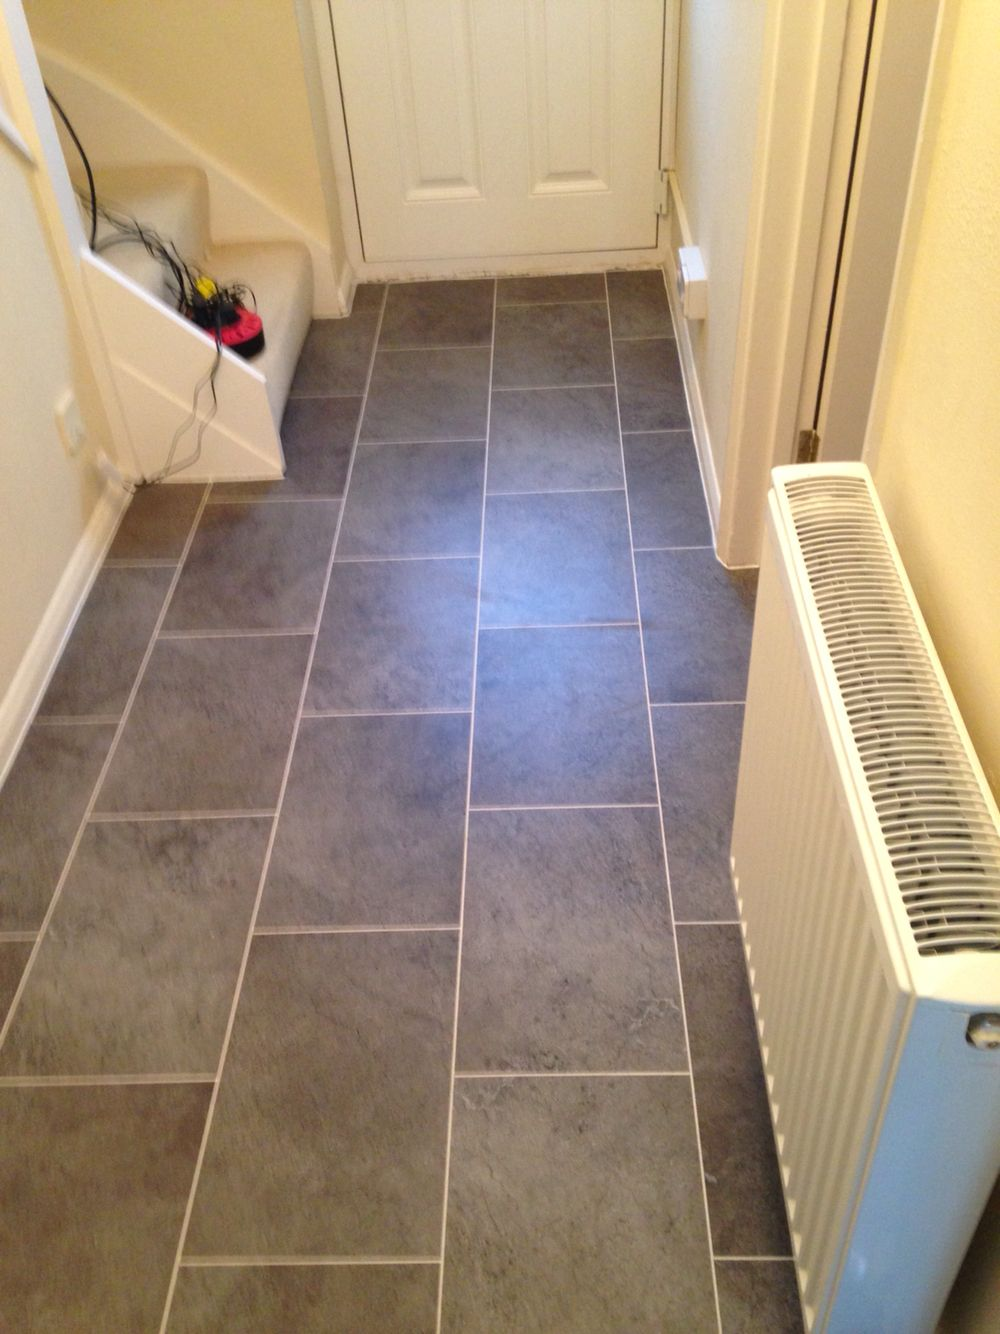 Karndean tiles fitted to a hallway & kitchen.